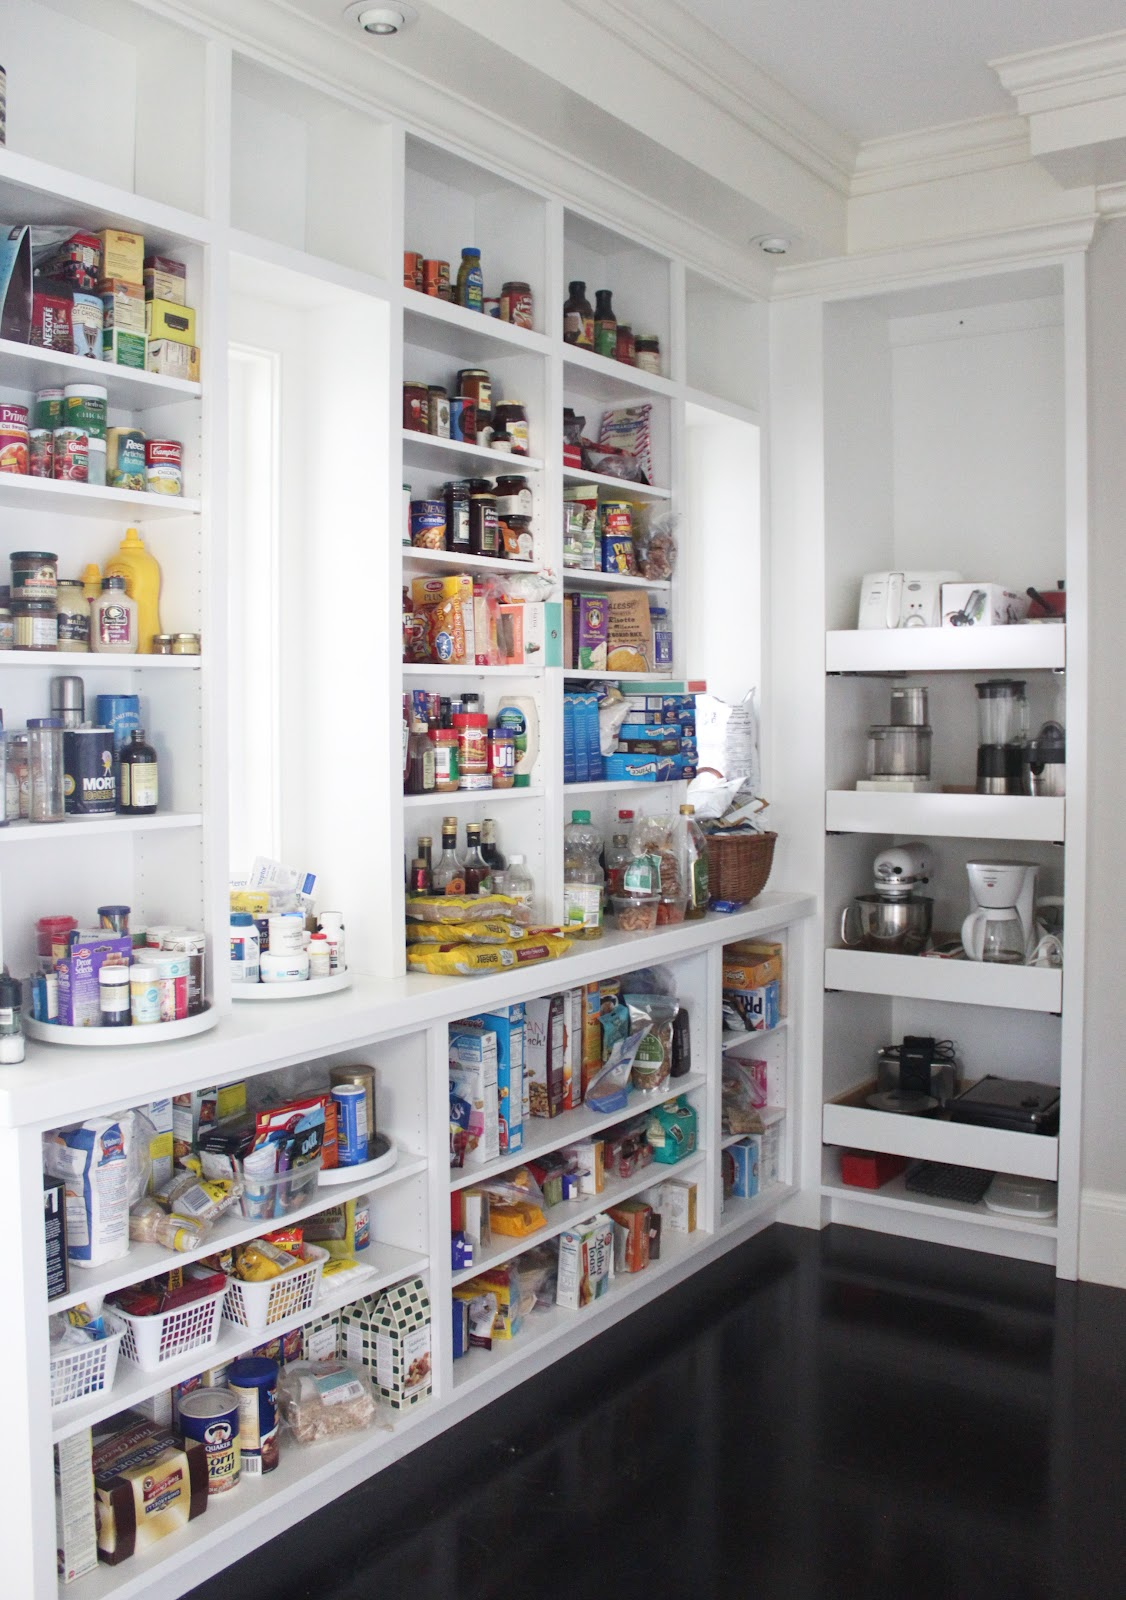 Pantry Design Ideas kitchen storage 10 cool kitchen pantry design ideas Pictures Kitchen Pantry Designs Ideas Kitchen Pantry Shelves Designs